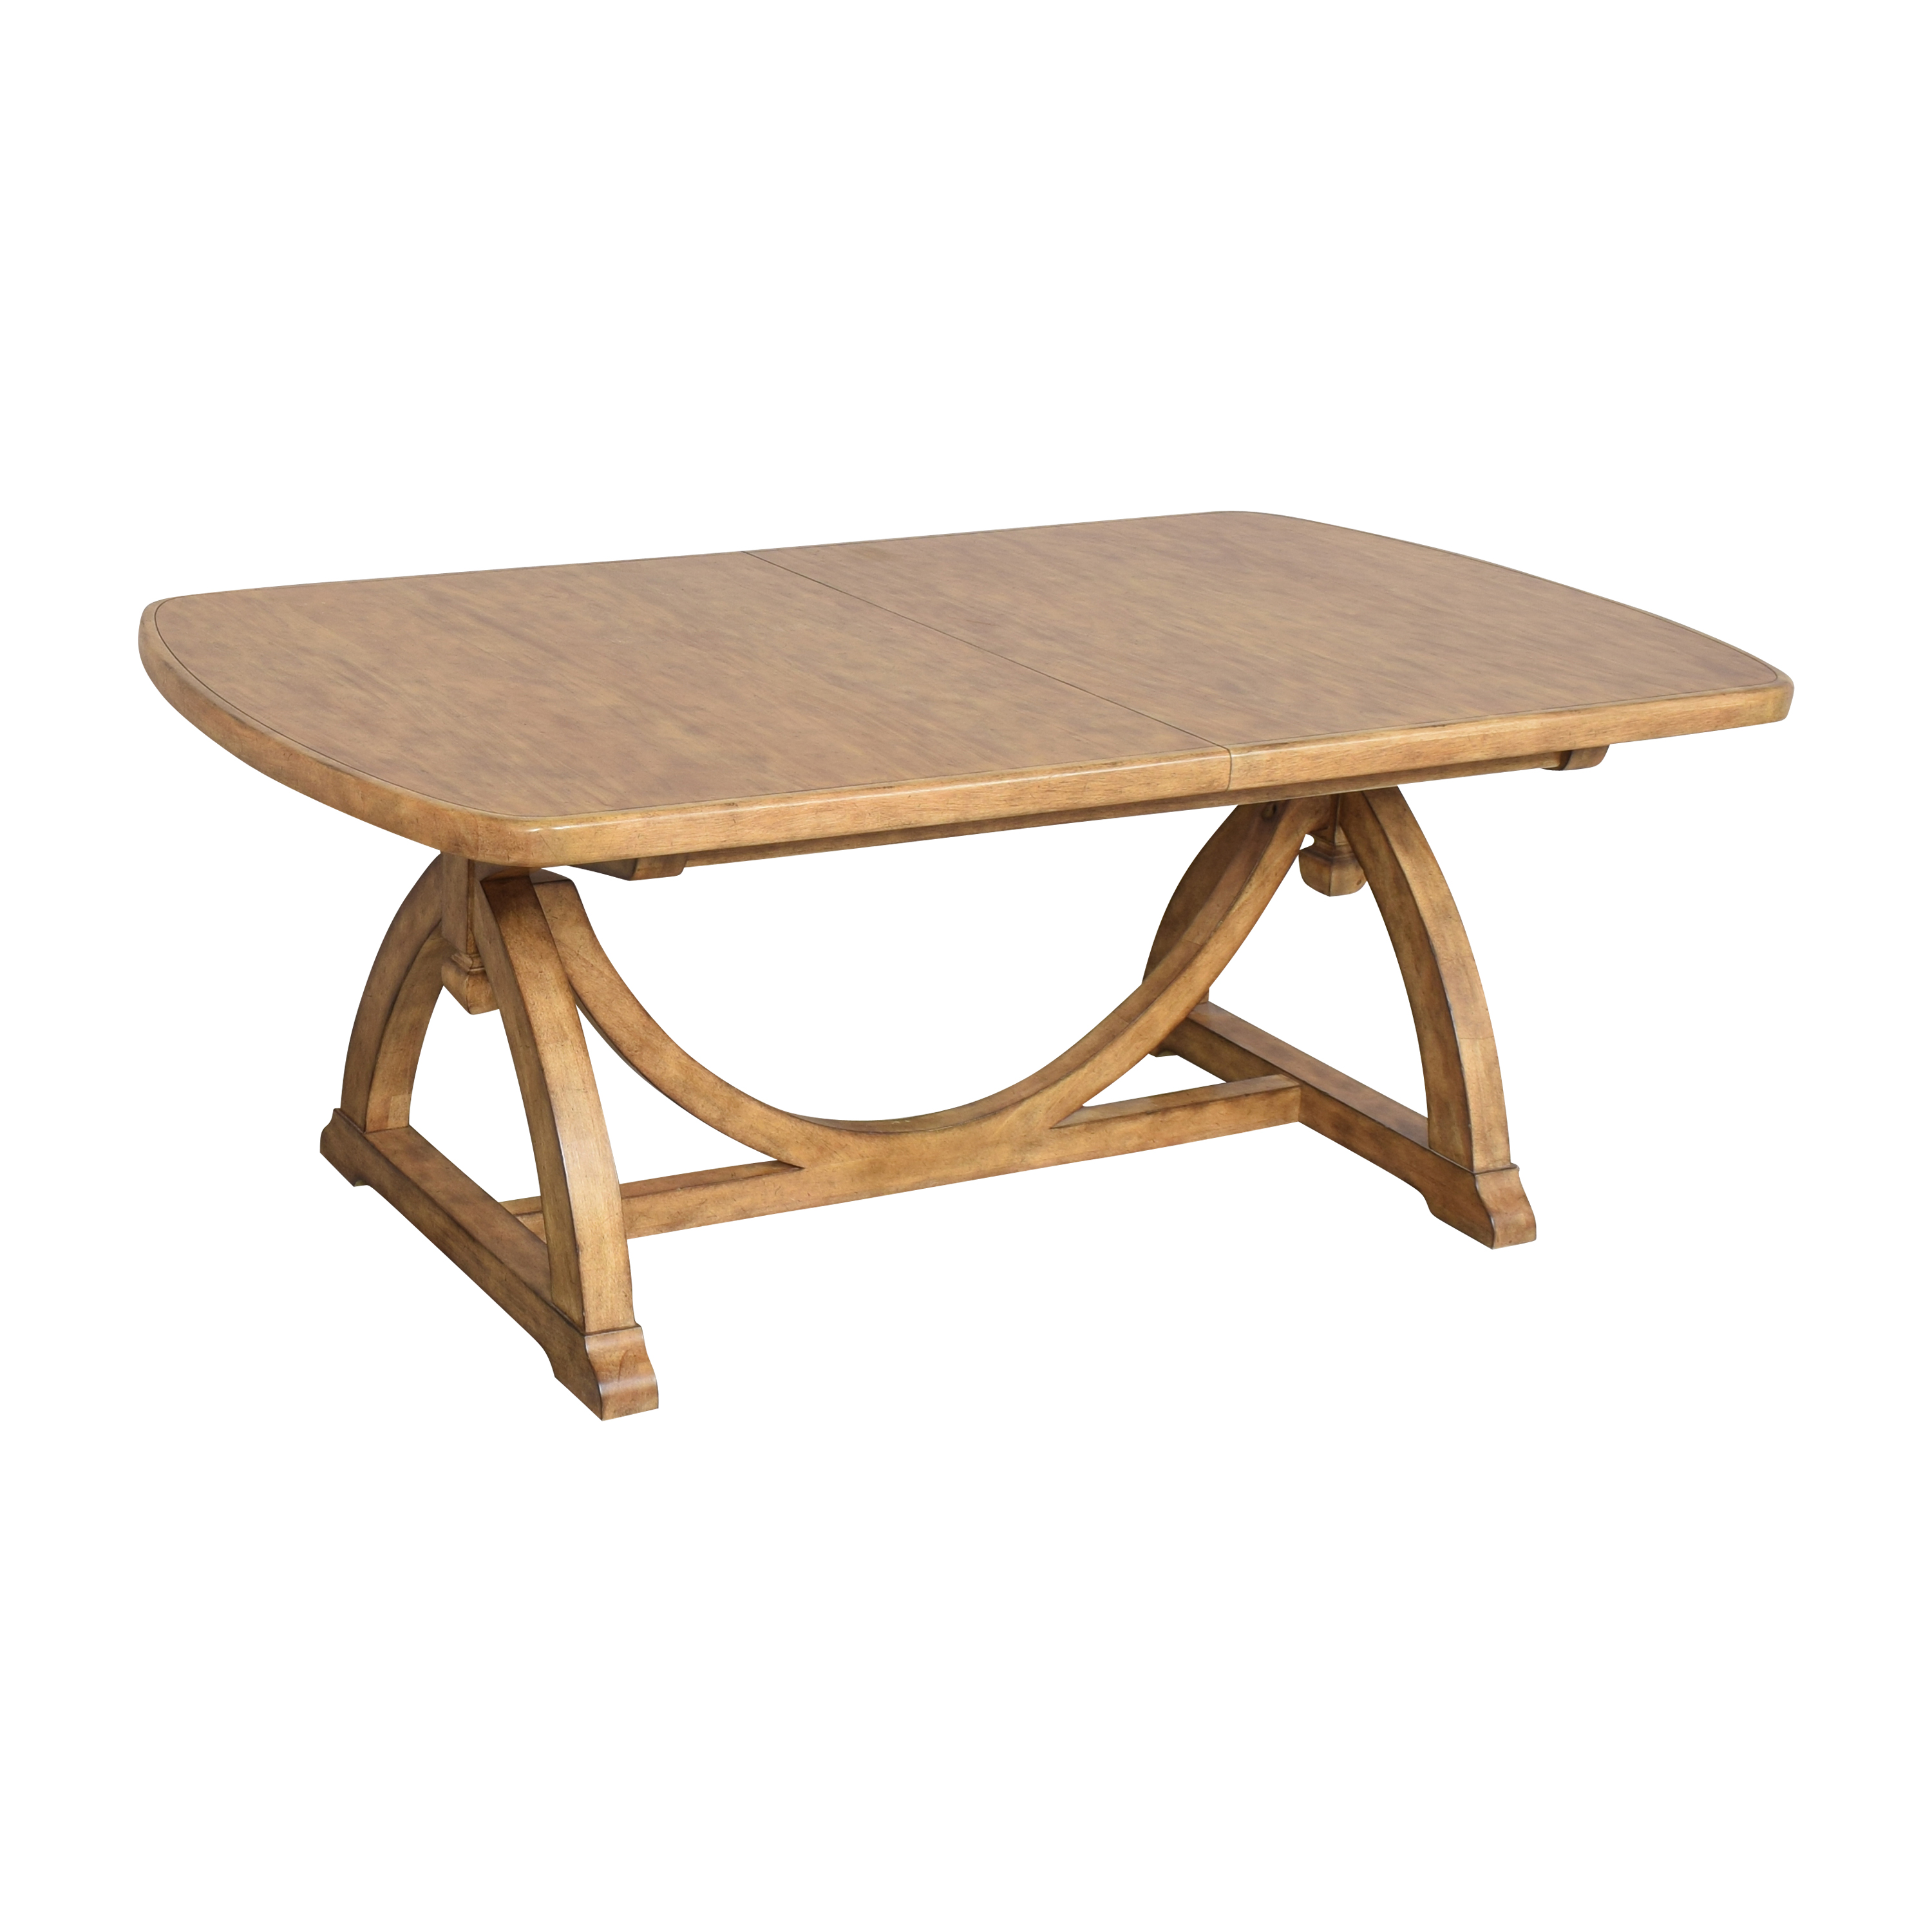 Thomasville Thomasville Reinventions Pacific Trestle Dining Table coupon